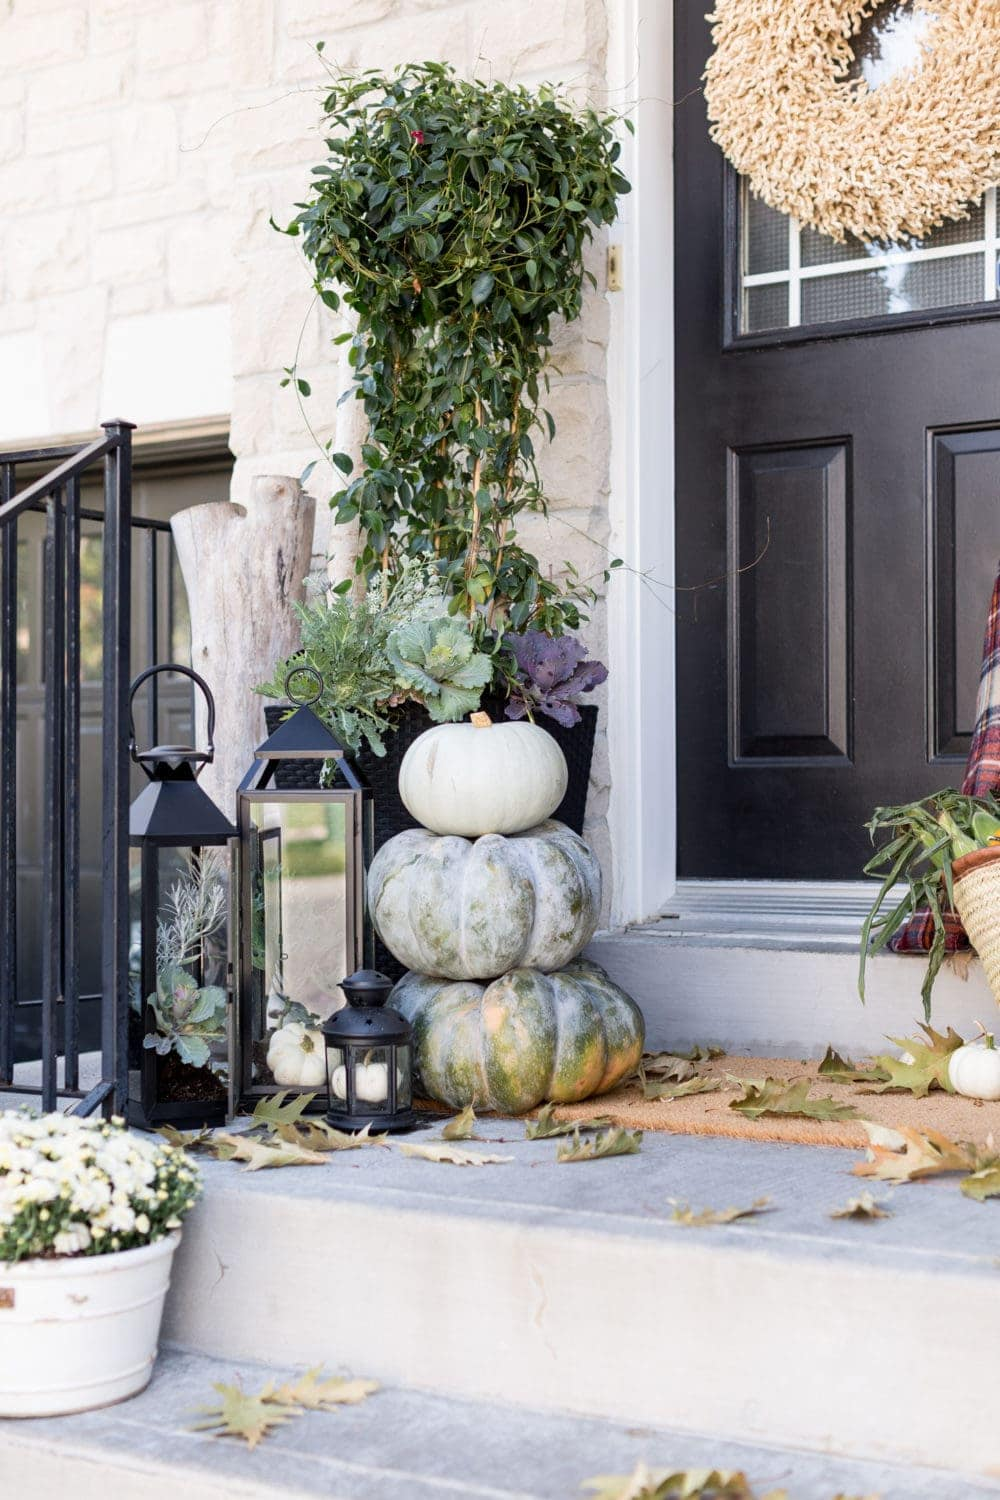 Fall front porch ideas using black lanterns and stacked pumpkins